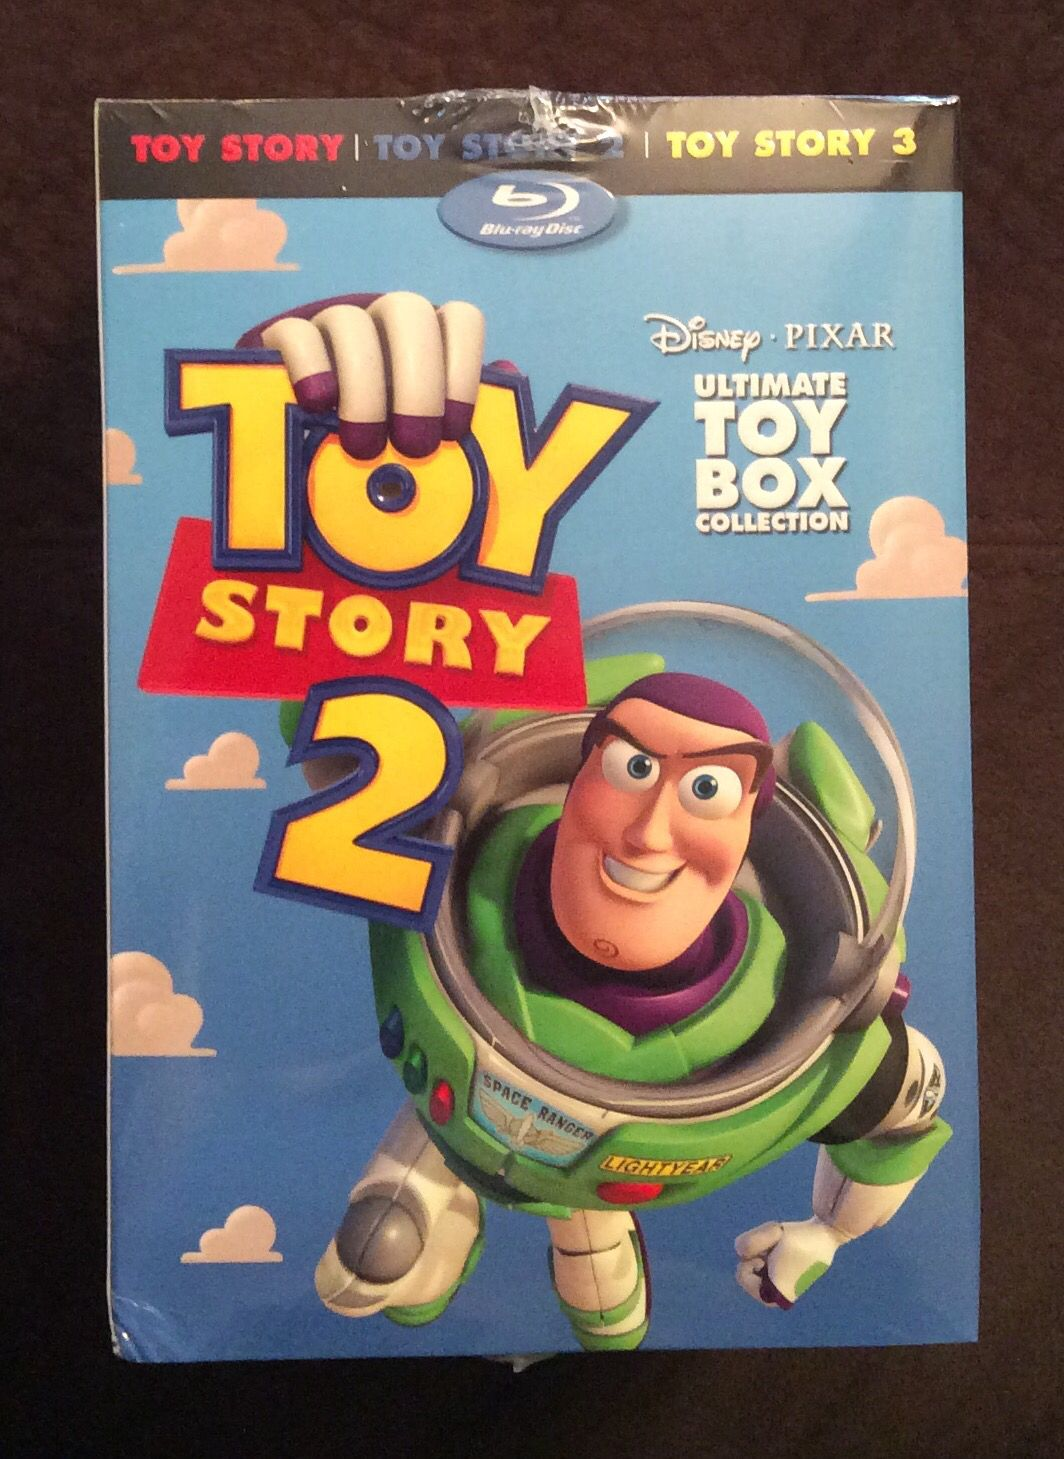 Pin By Mickeys Magical Mall On Rare Out Of Print Disney Animated Classics Toy Story 3 Movie Disney Toys Disney Animated Classics